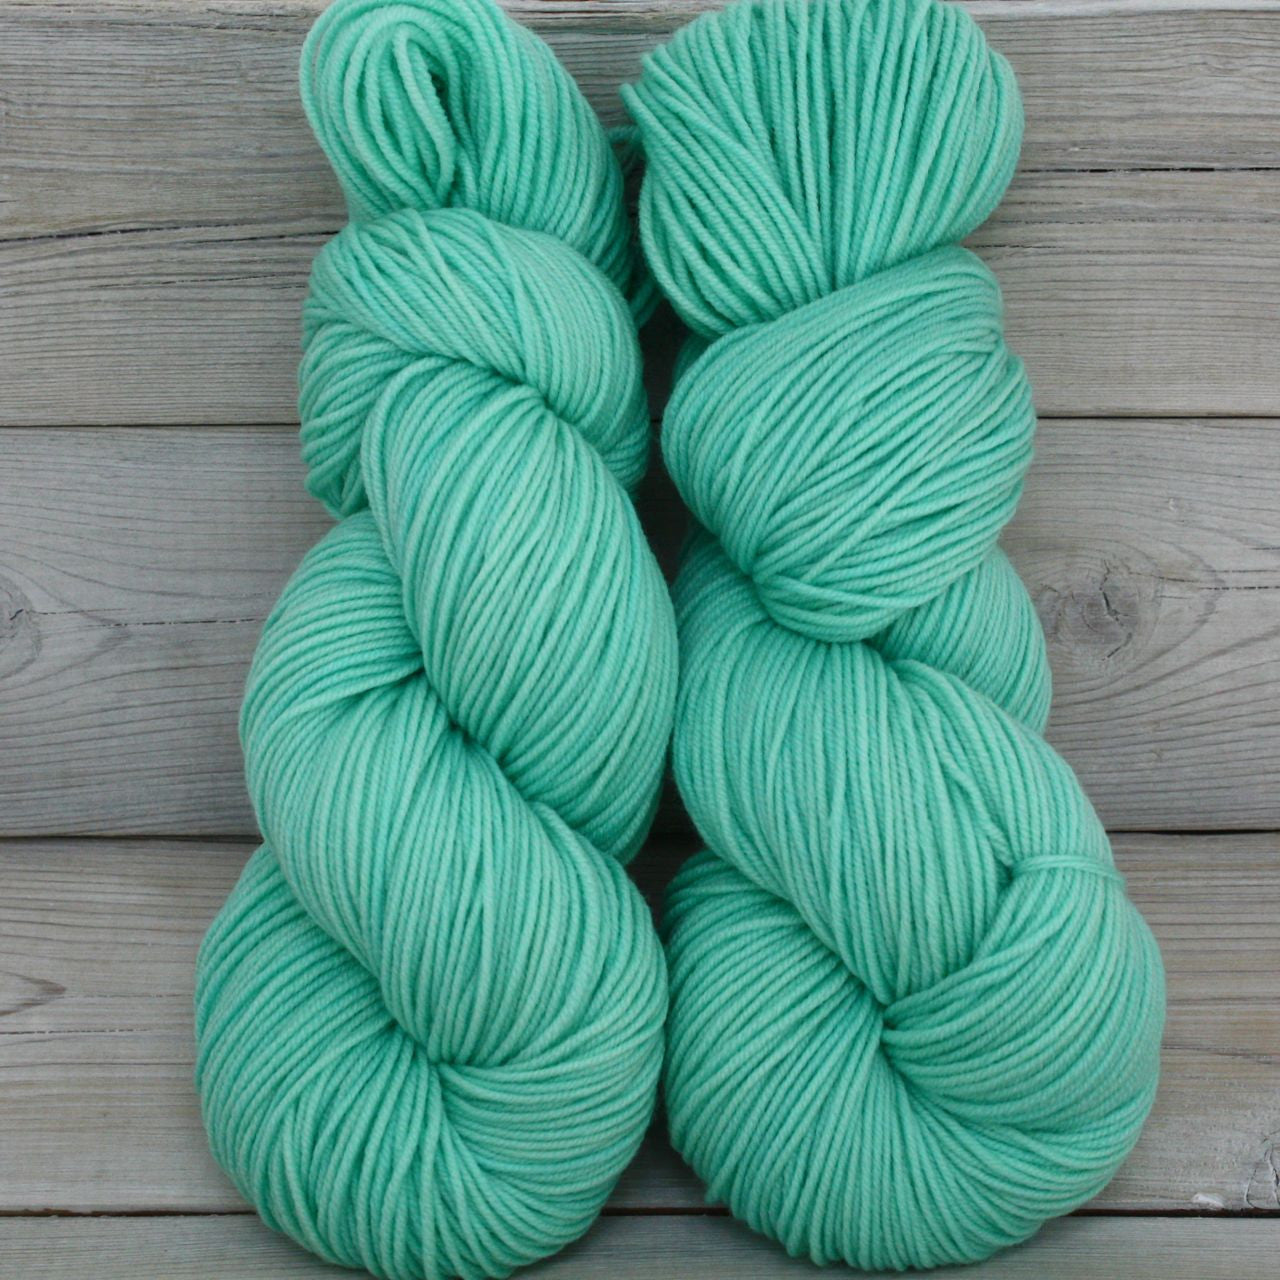 Aspen Sport Yarn | Colorway: Glacier